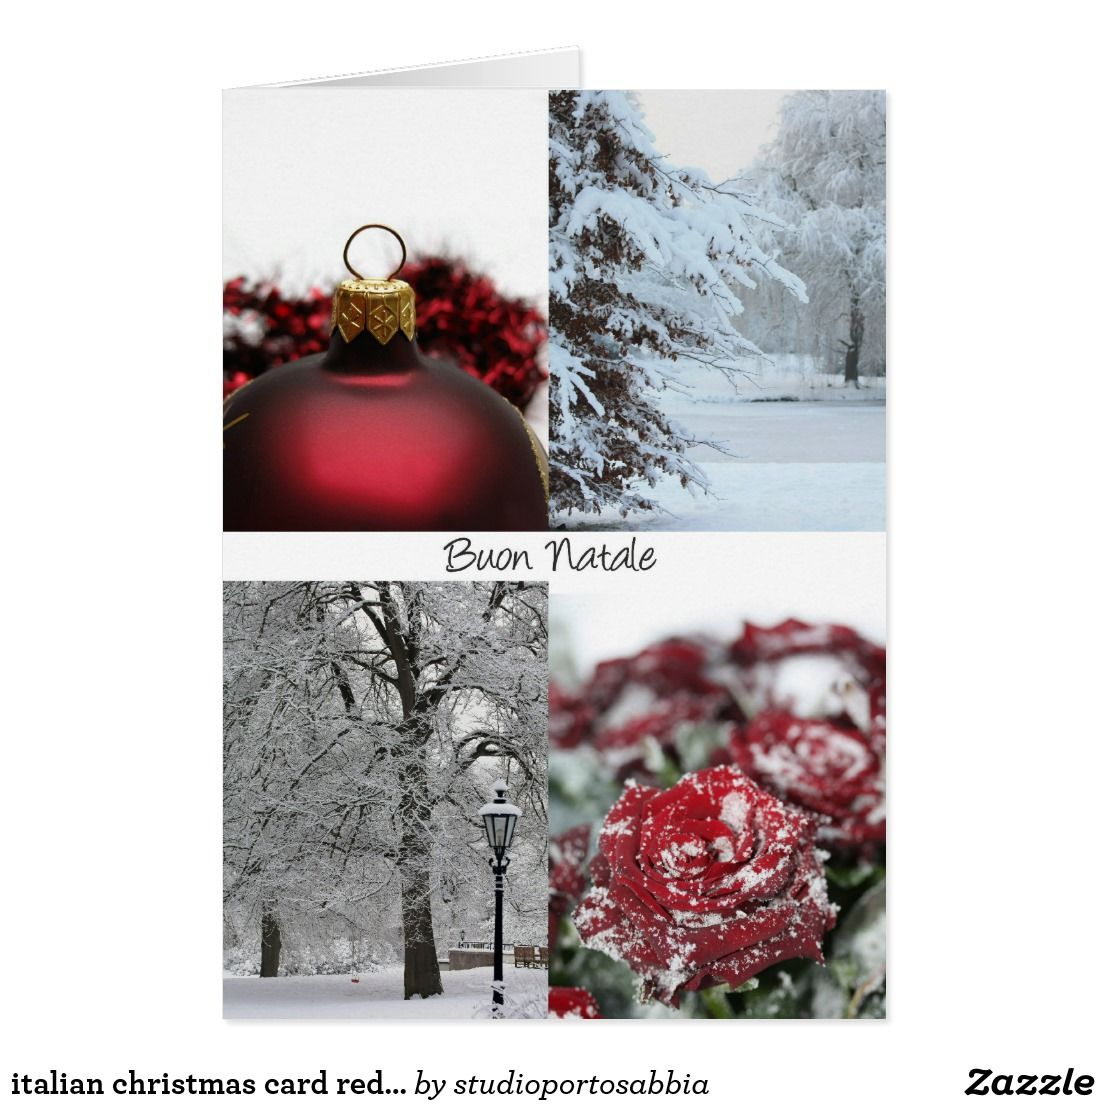 Italian Christmas Card Red Winter Snow Collage Christmas Cards